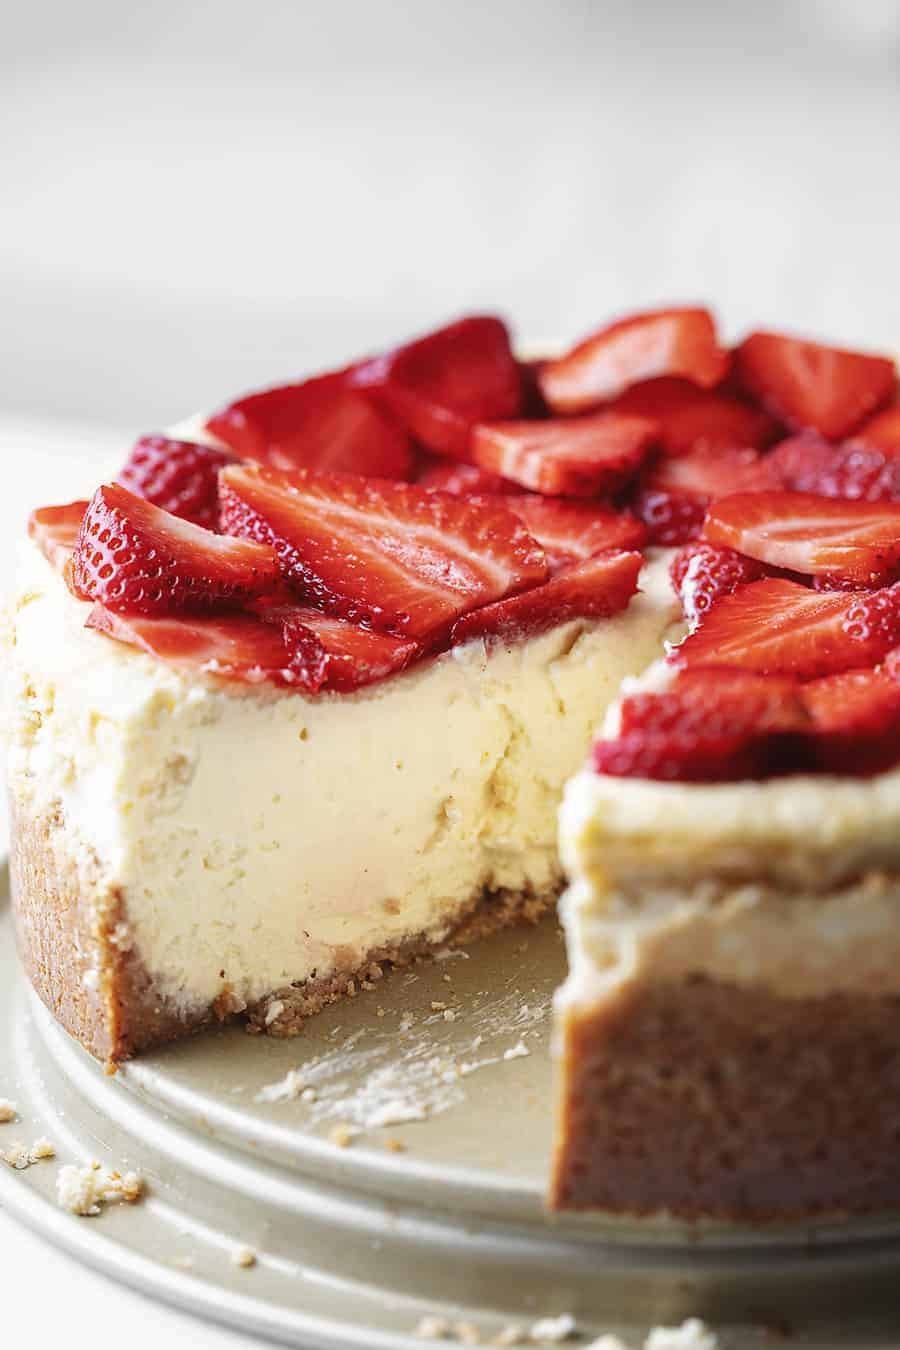 Keto Dessert Cheesecake  The Best Keto Cheesecake • Low Carb with Jennifer